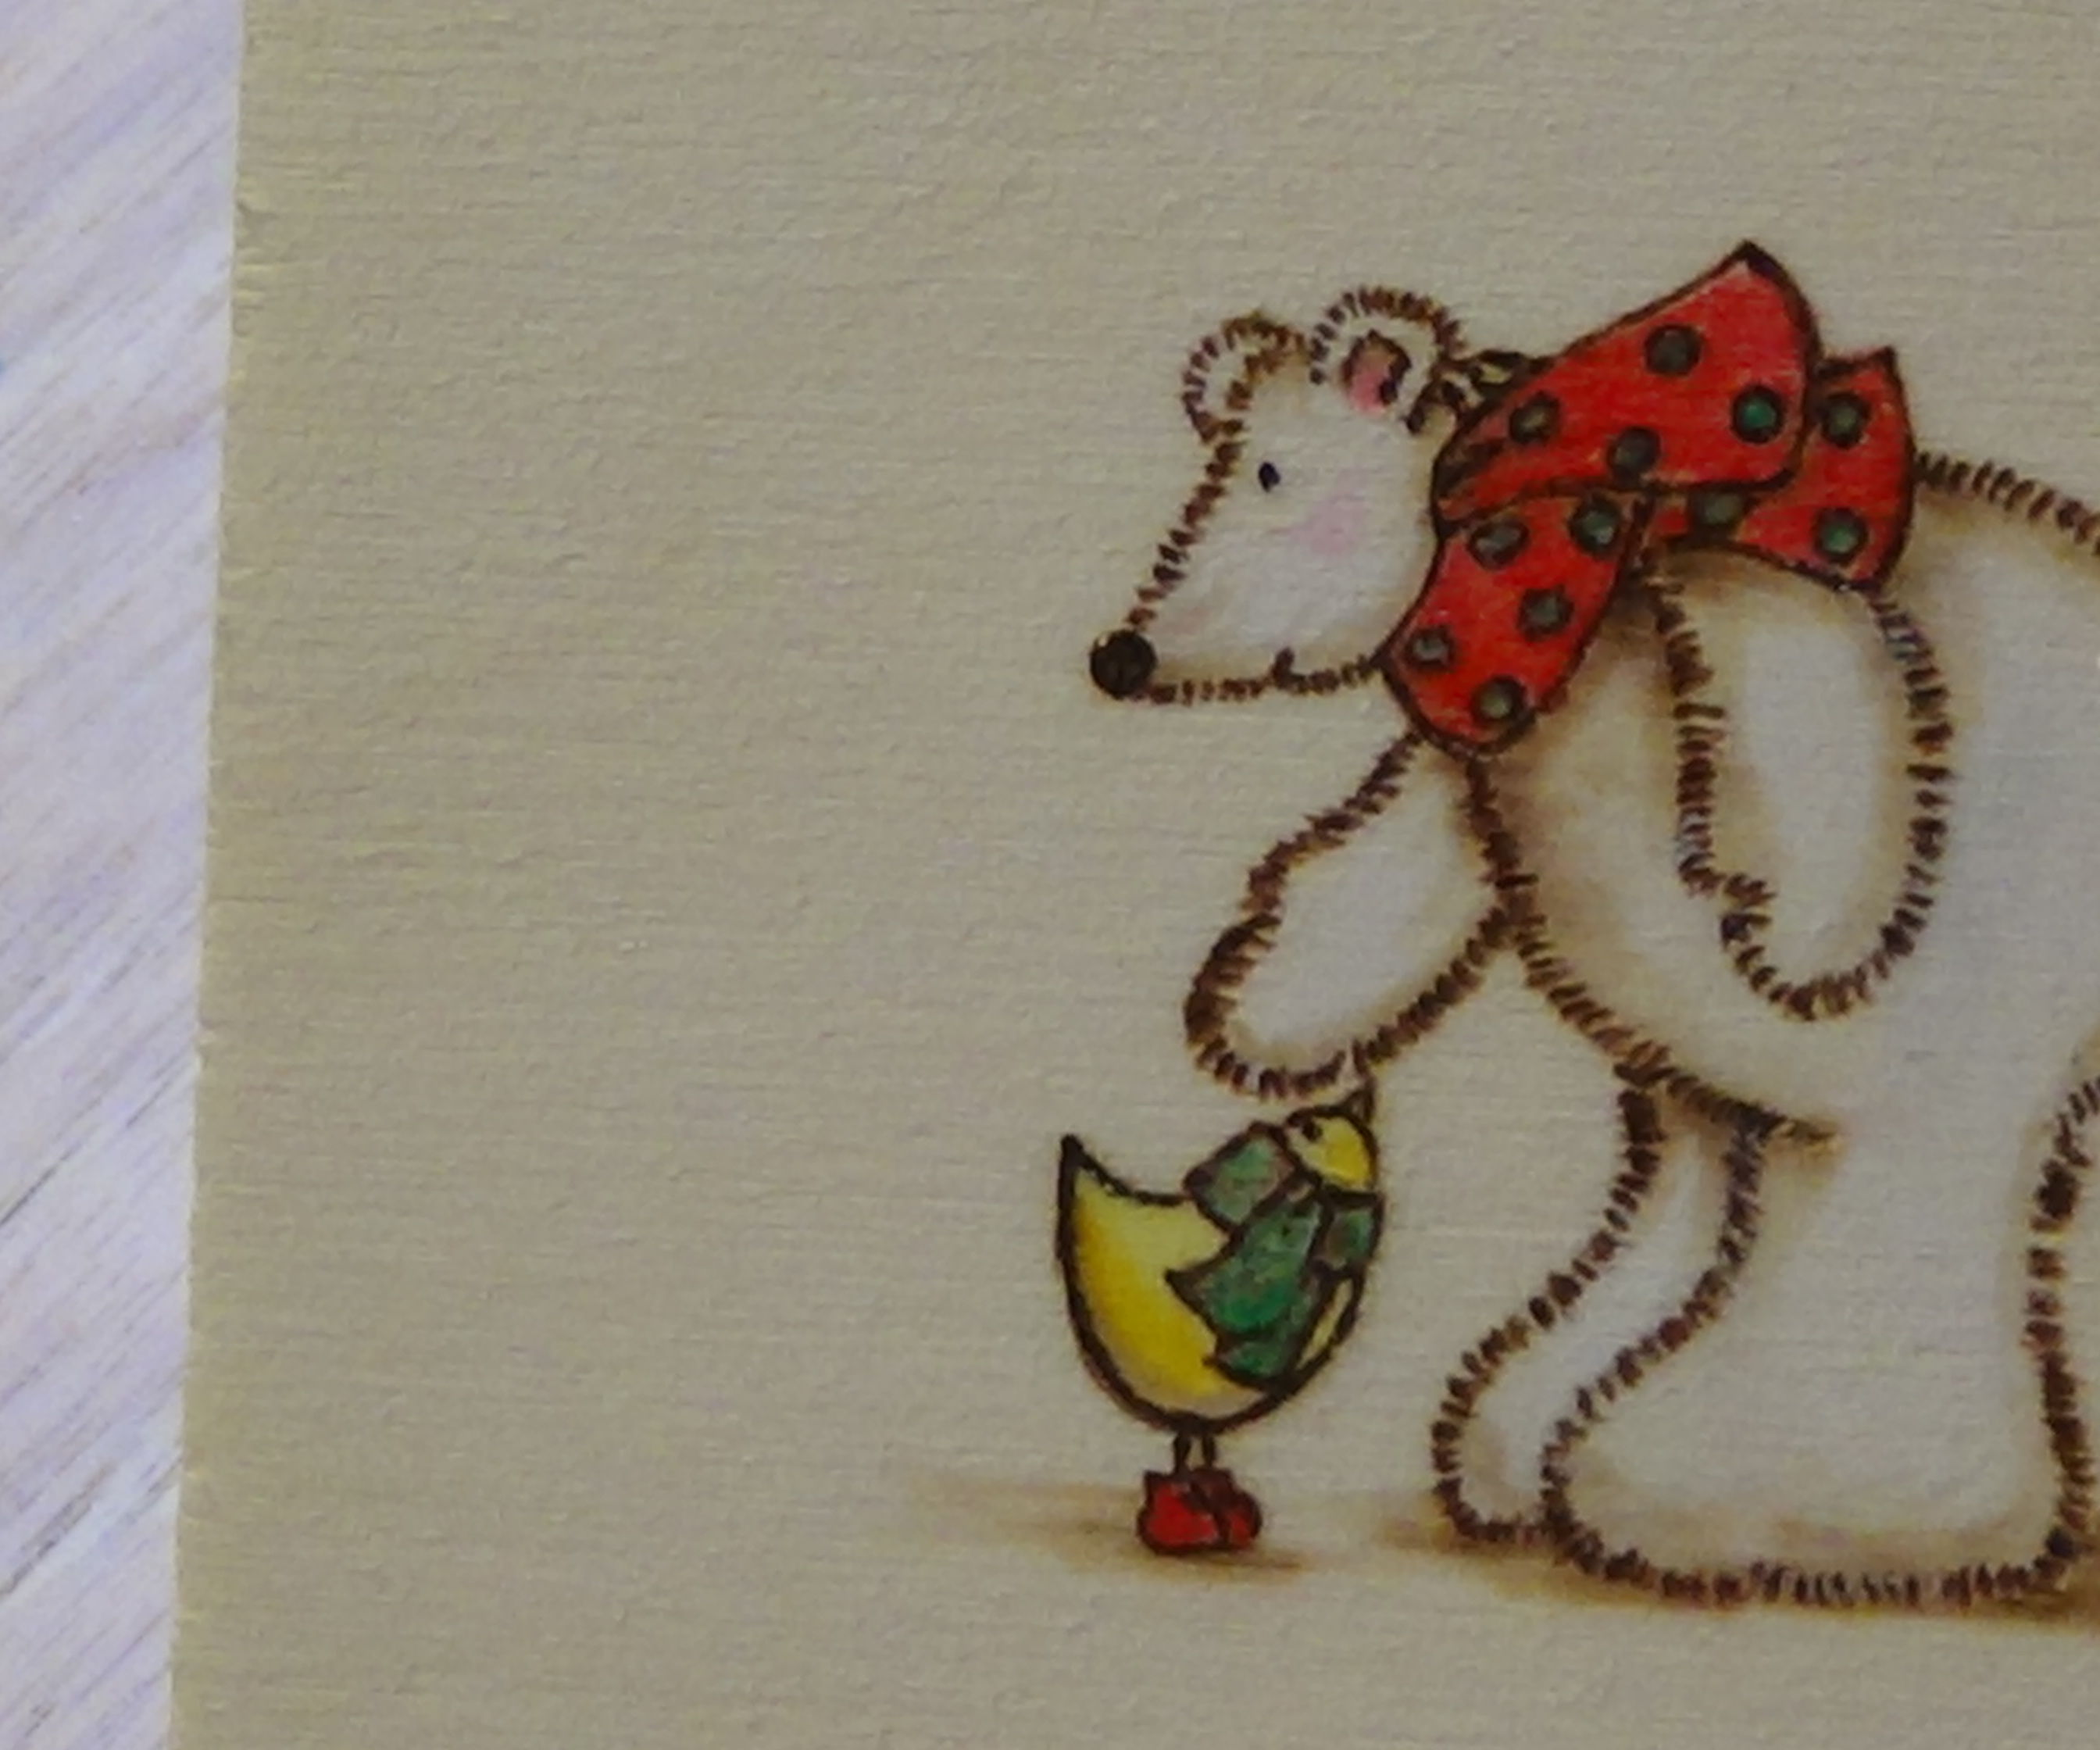 Pyrography: Using Rubber Stamps with your Burnings